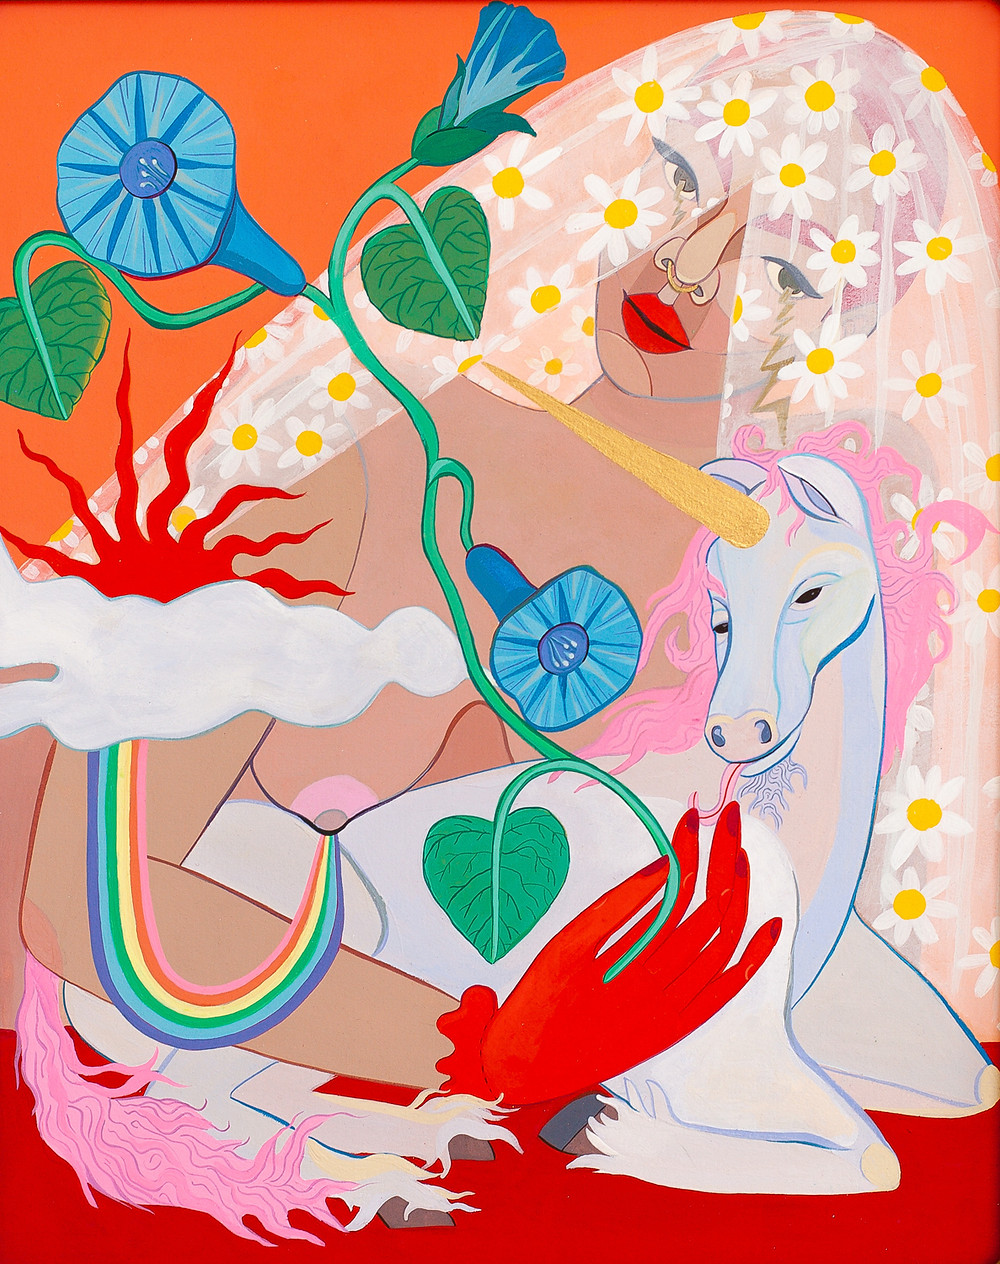 """""""Rainbows and Unicorns"""" by Meg Lionel Murphy at The Untitled Space"""